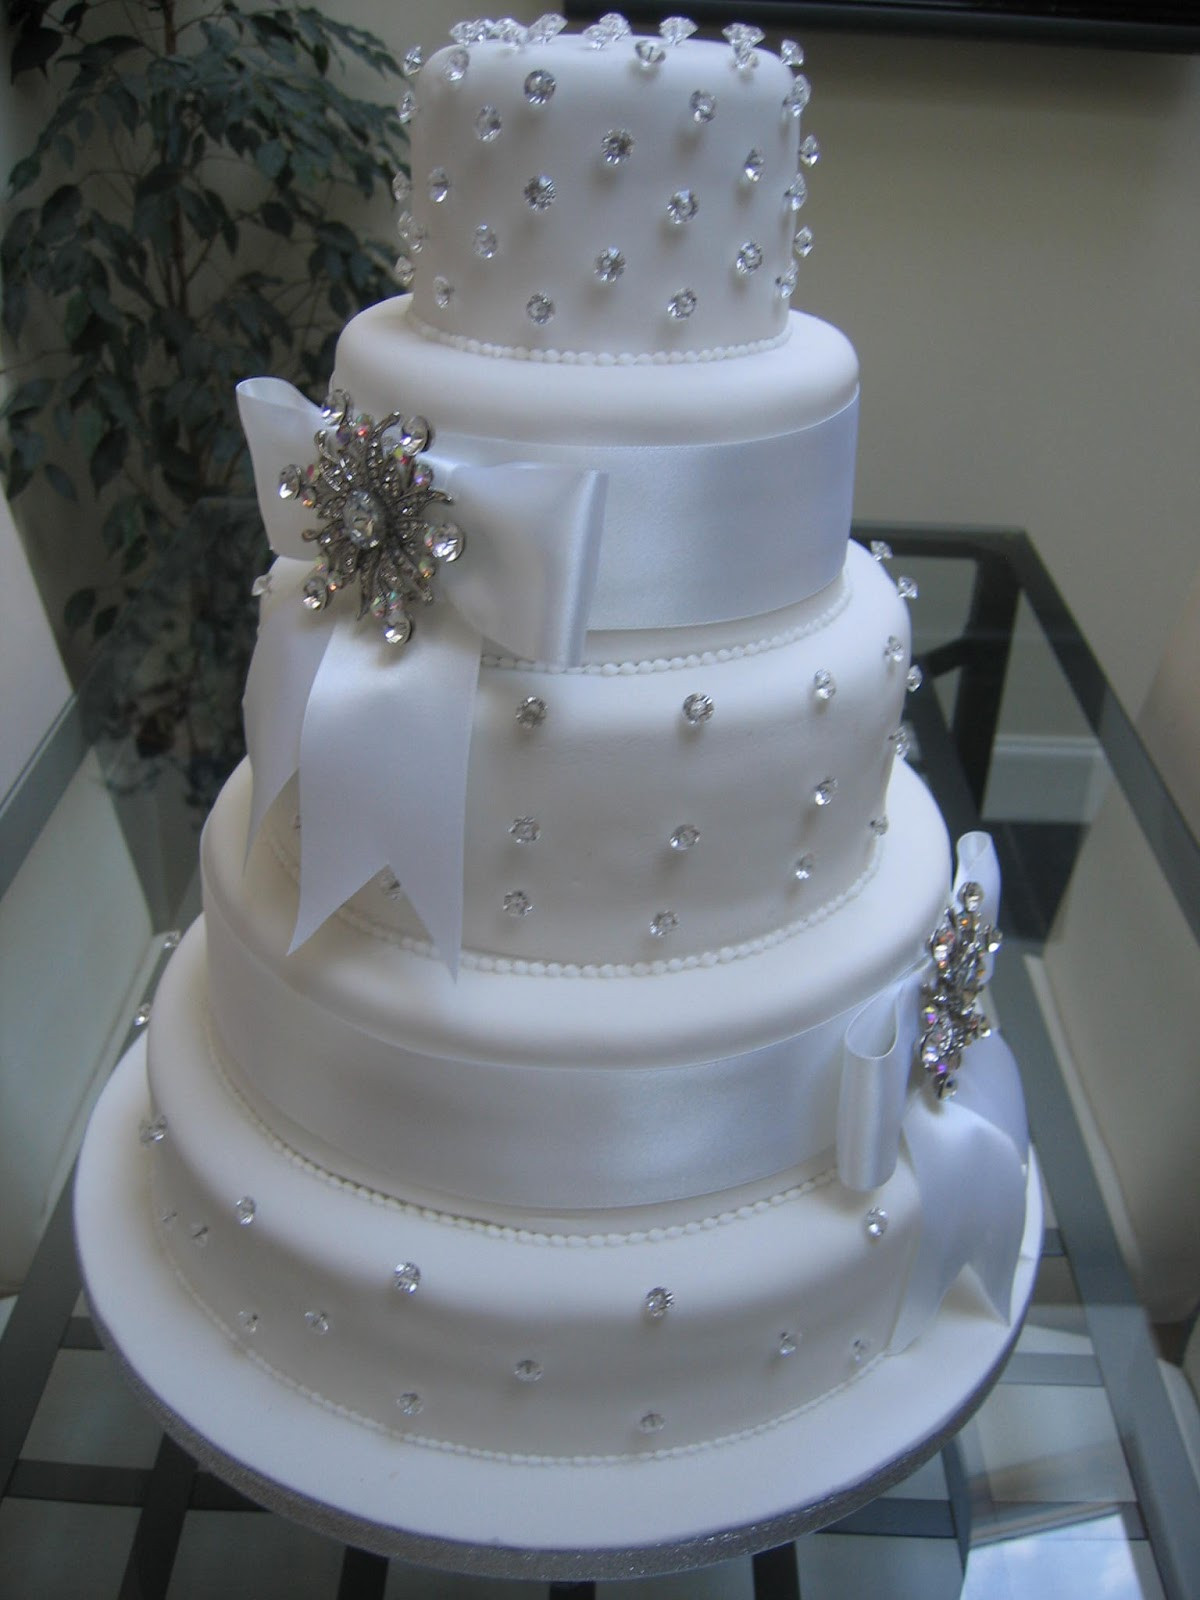 Prettiest Wedding Cakes  Wedding Cake Bling Beautiful Cakes That Sparkle & Shine